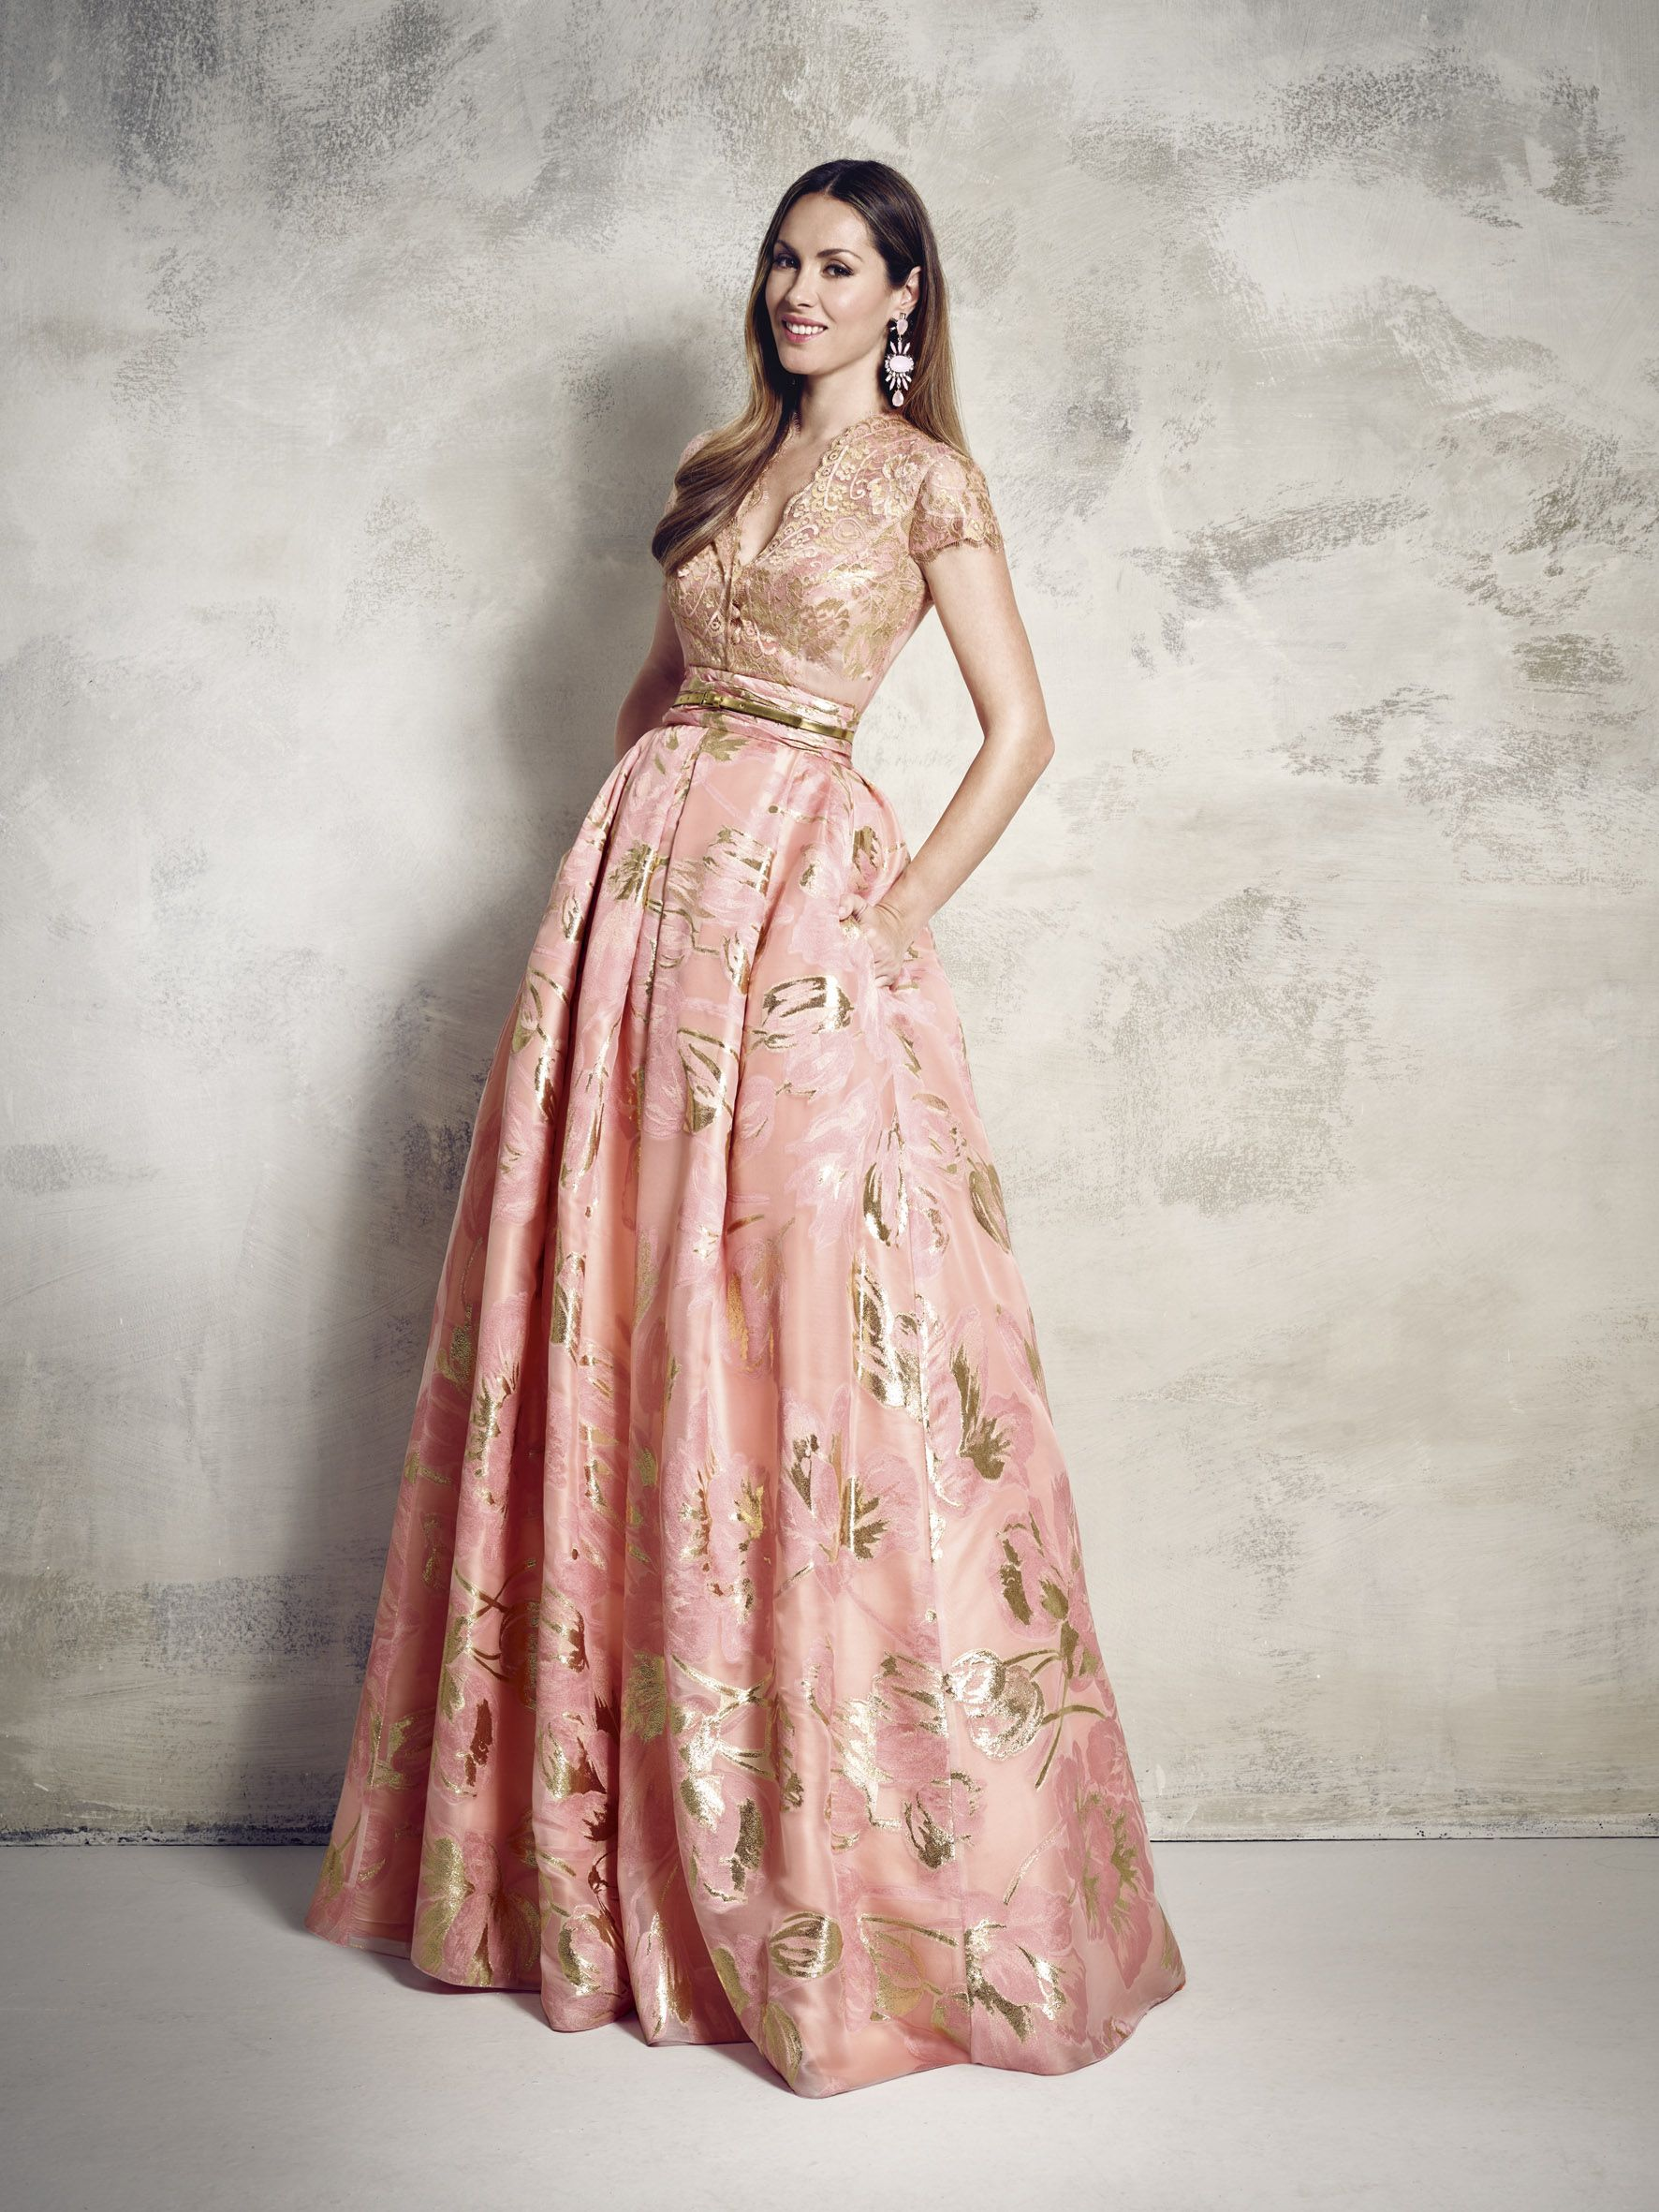 Pin de Bhavisha Zaveri en Fashion trends | Pinterest | Boda, Fiestas ...